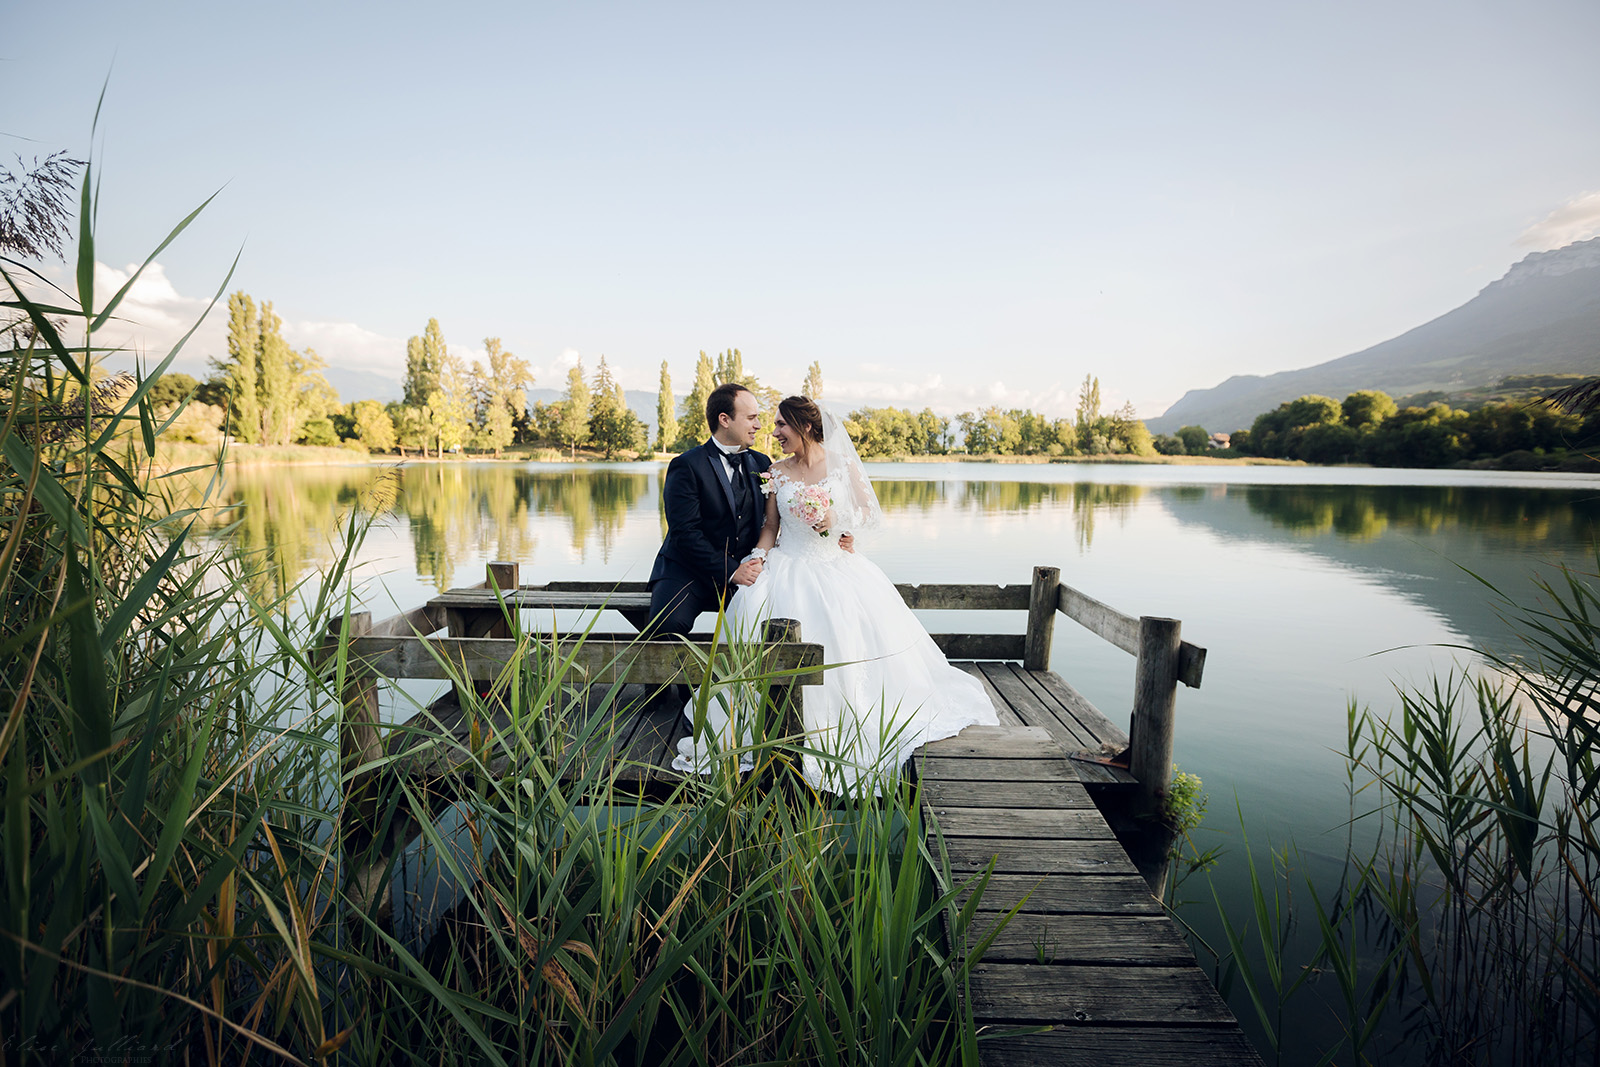 mariage-photographe-elise-julliard-wedding-love-session-lac-saint-andre-auvergne-rhone-alpes-lyon-chambery-seance-photo-couple-trash-the-dress-6